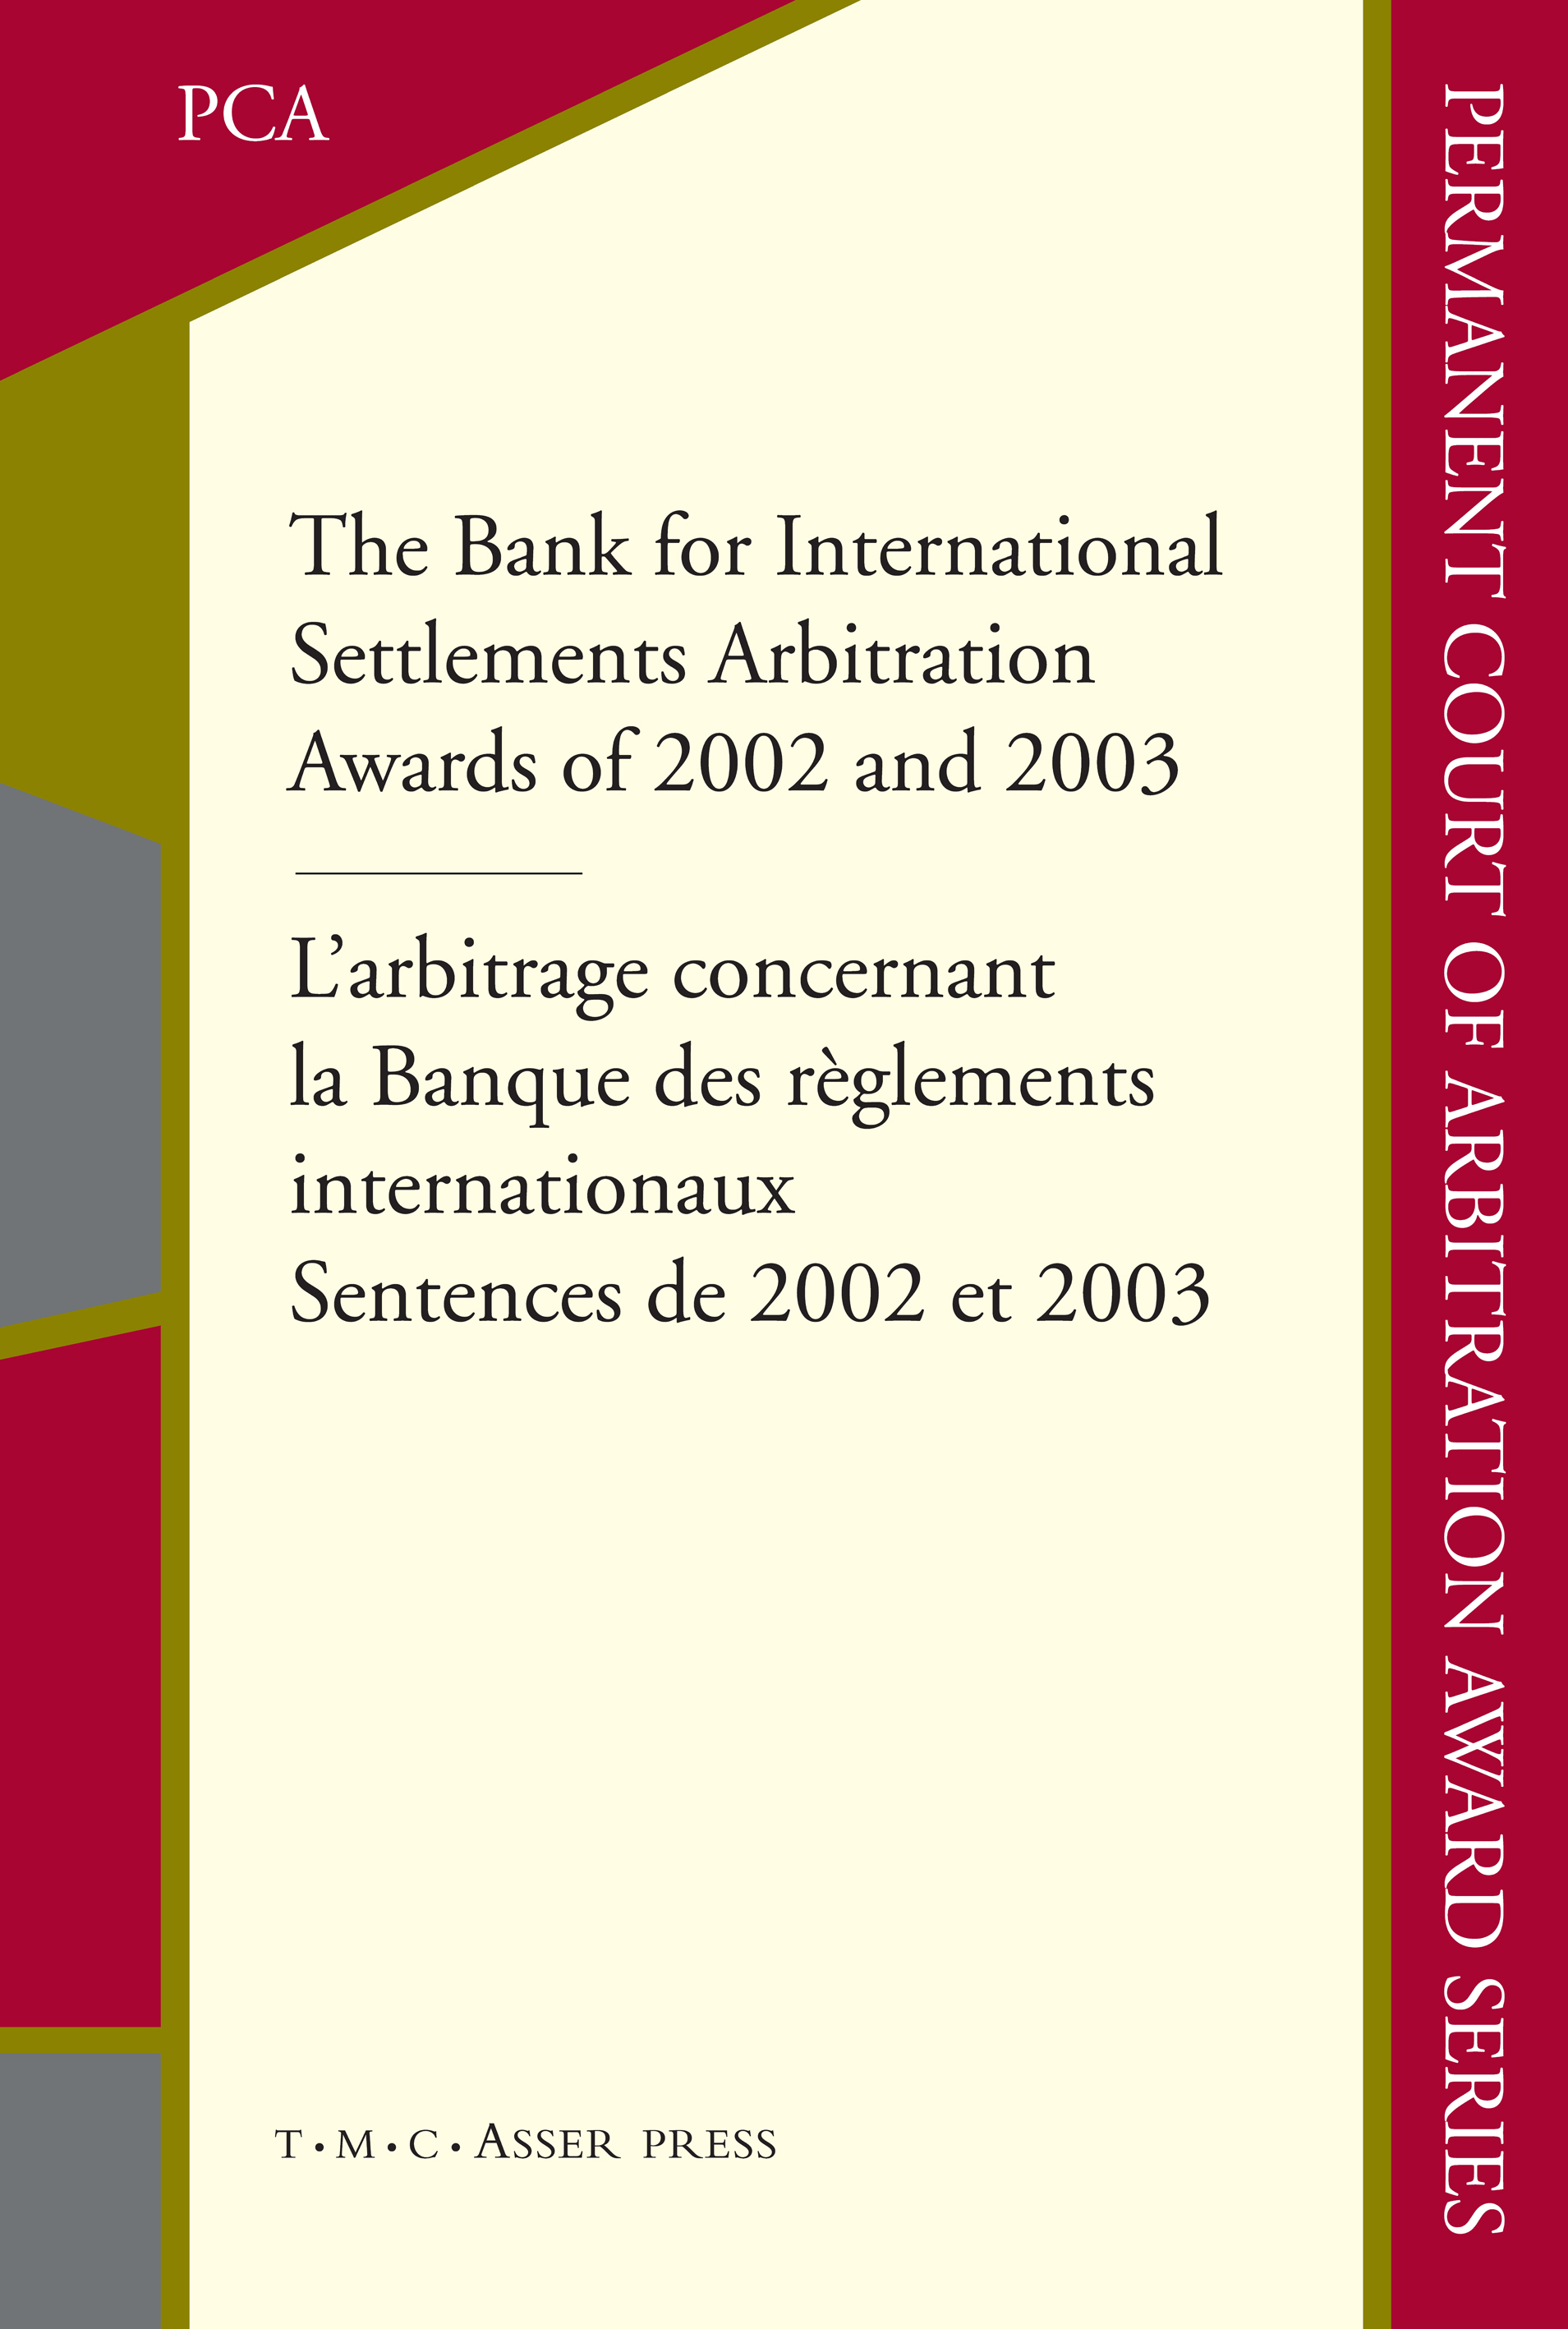 The Bank For International Settlements Arbitration Awards Of 2002 And 2003